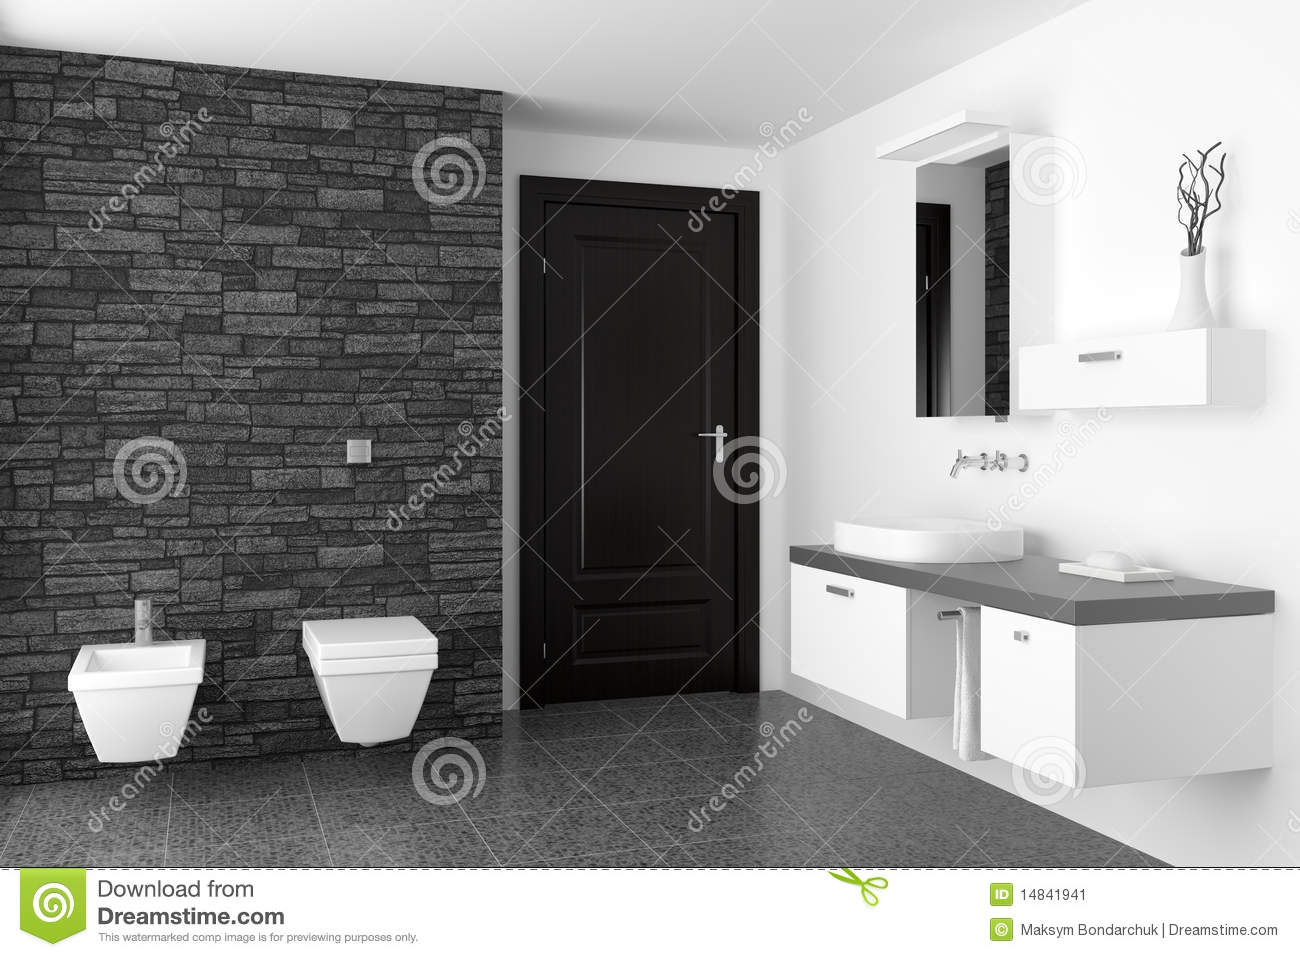 salle de bains moderne avec le mur en pierre noir image stock image 14841941. Black Bedroom Furniture Sets. Home Design Ideas